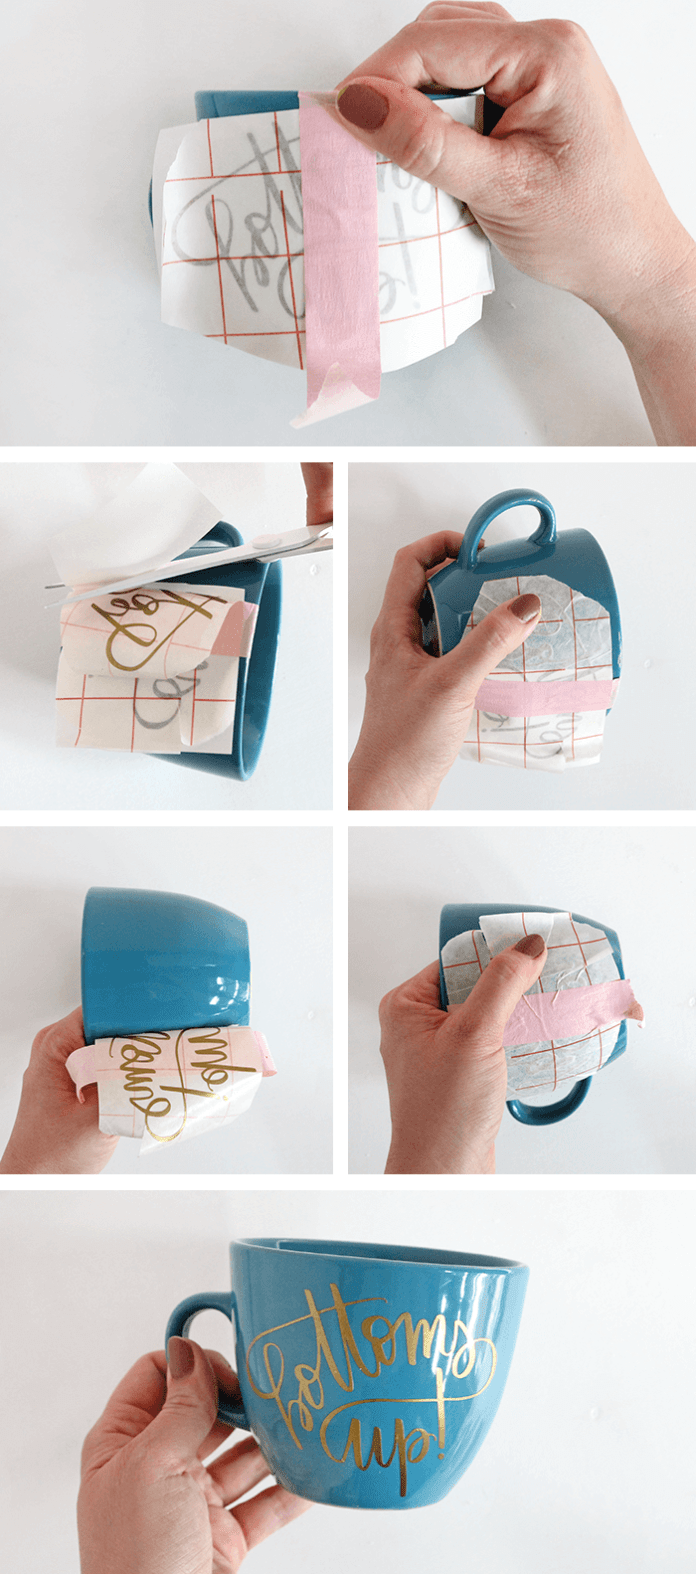 Learn How To DIY Personalized Mugs And Tea Cups from home.